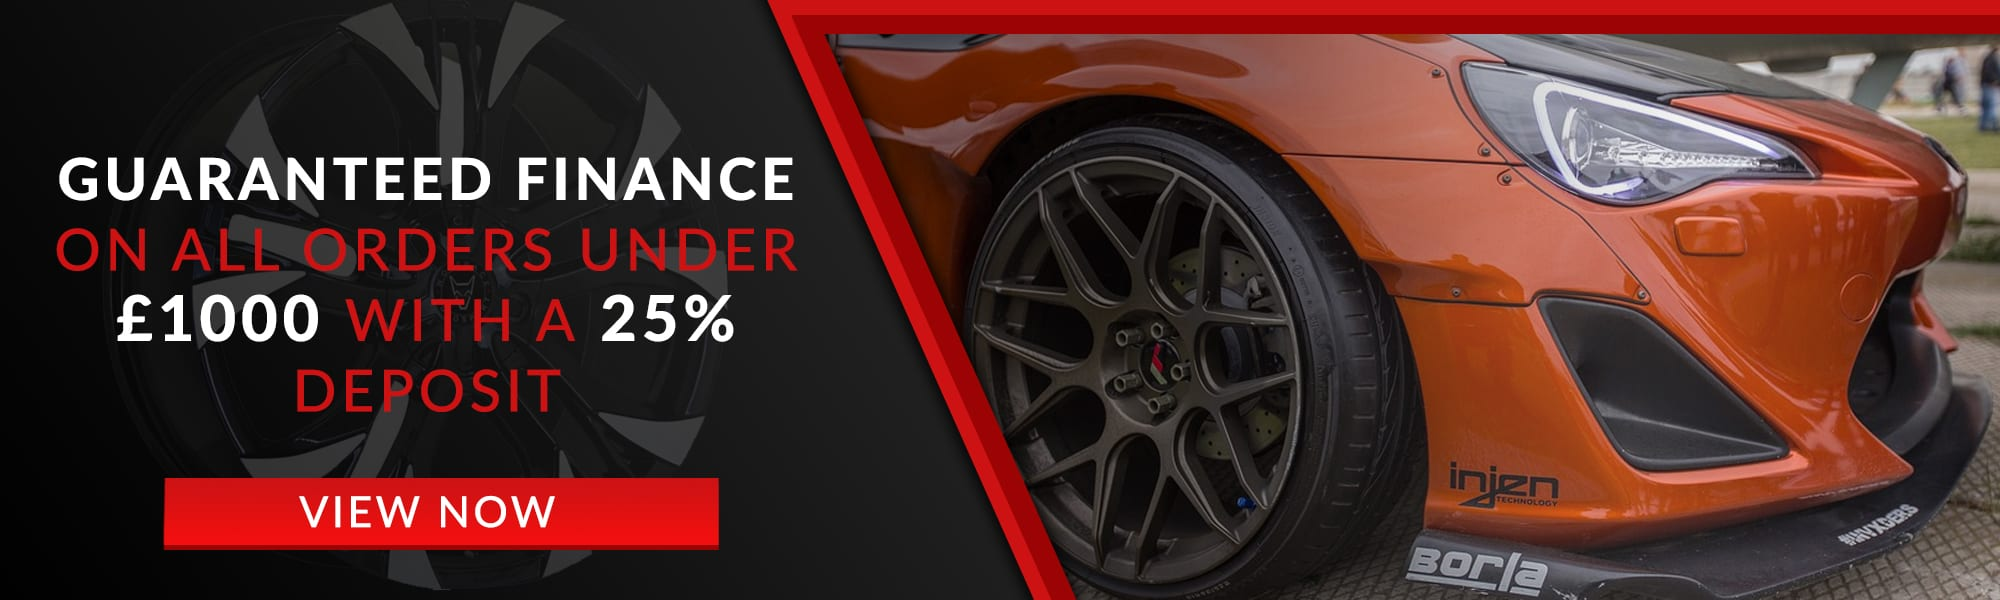 Guaranteed Finance on all orders under £1000 with a 25% deposit